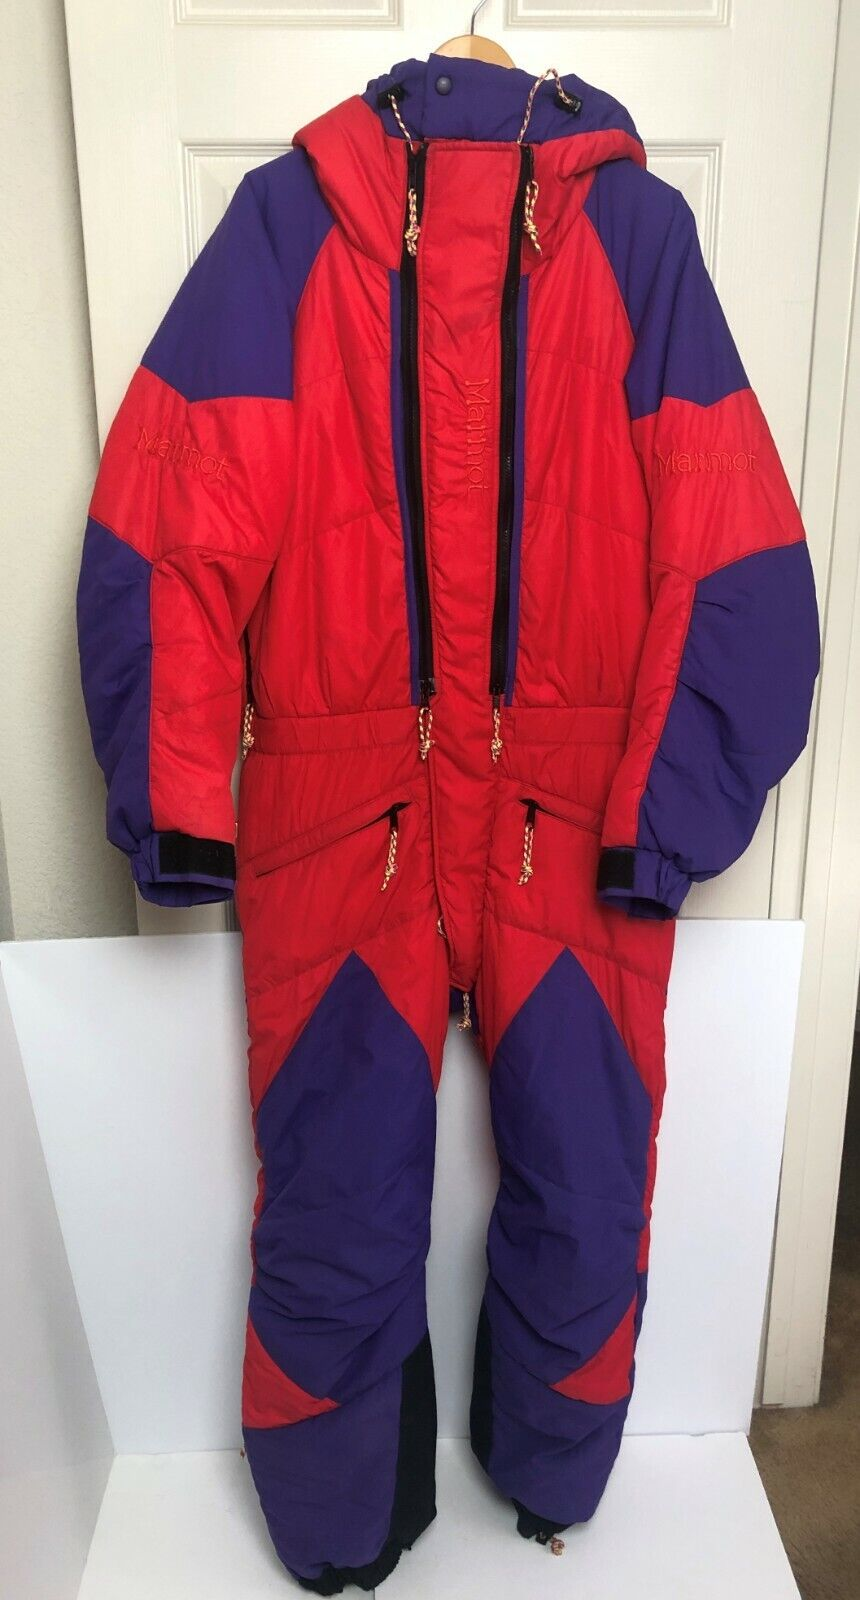 MARMOT Extreme Cold Weather SUIT Mountaineering 8000 meter S